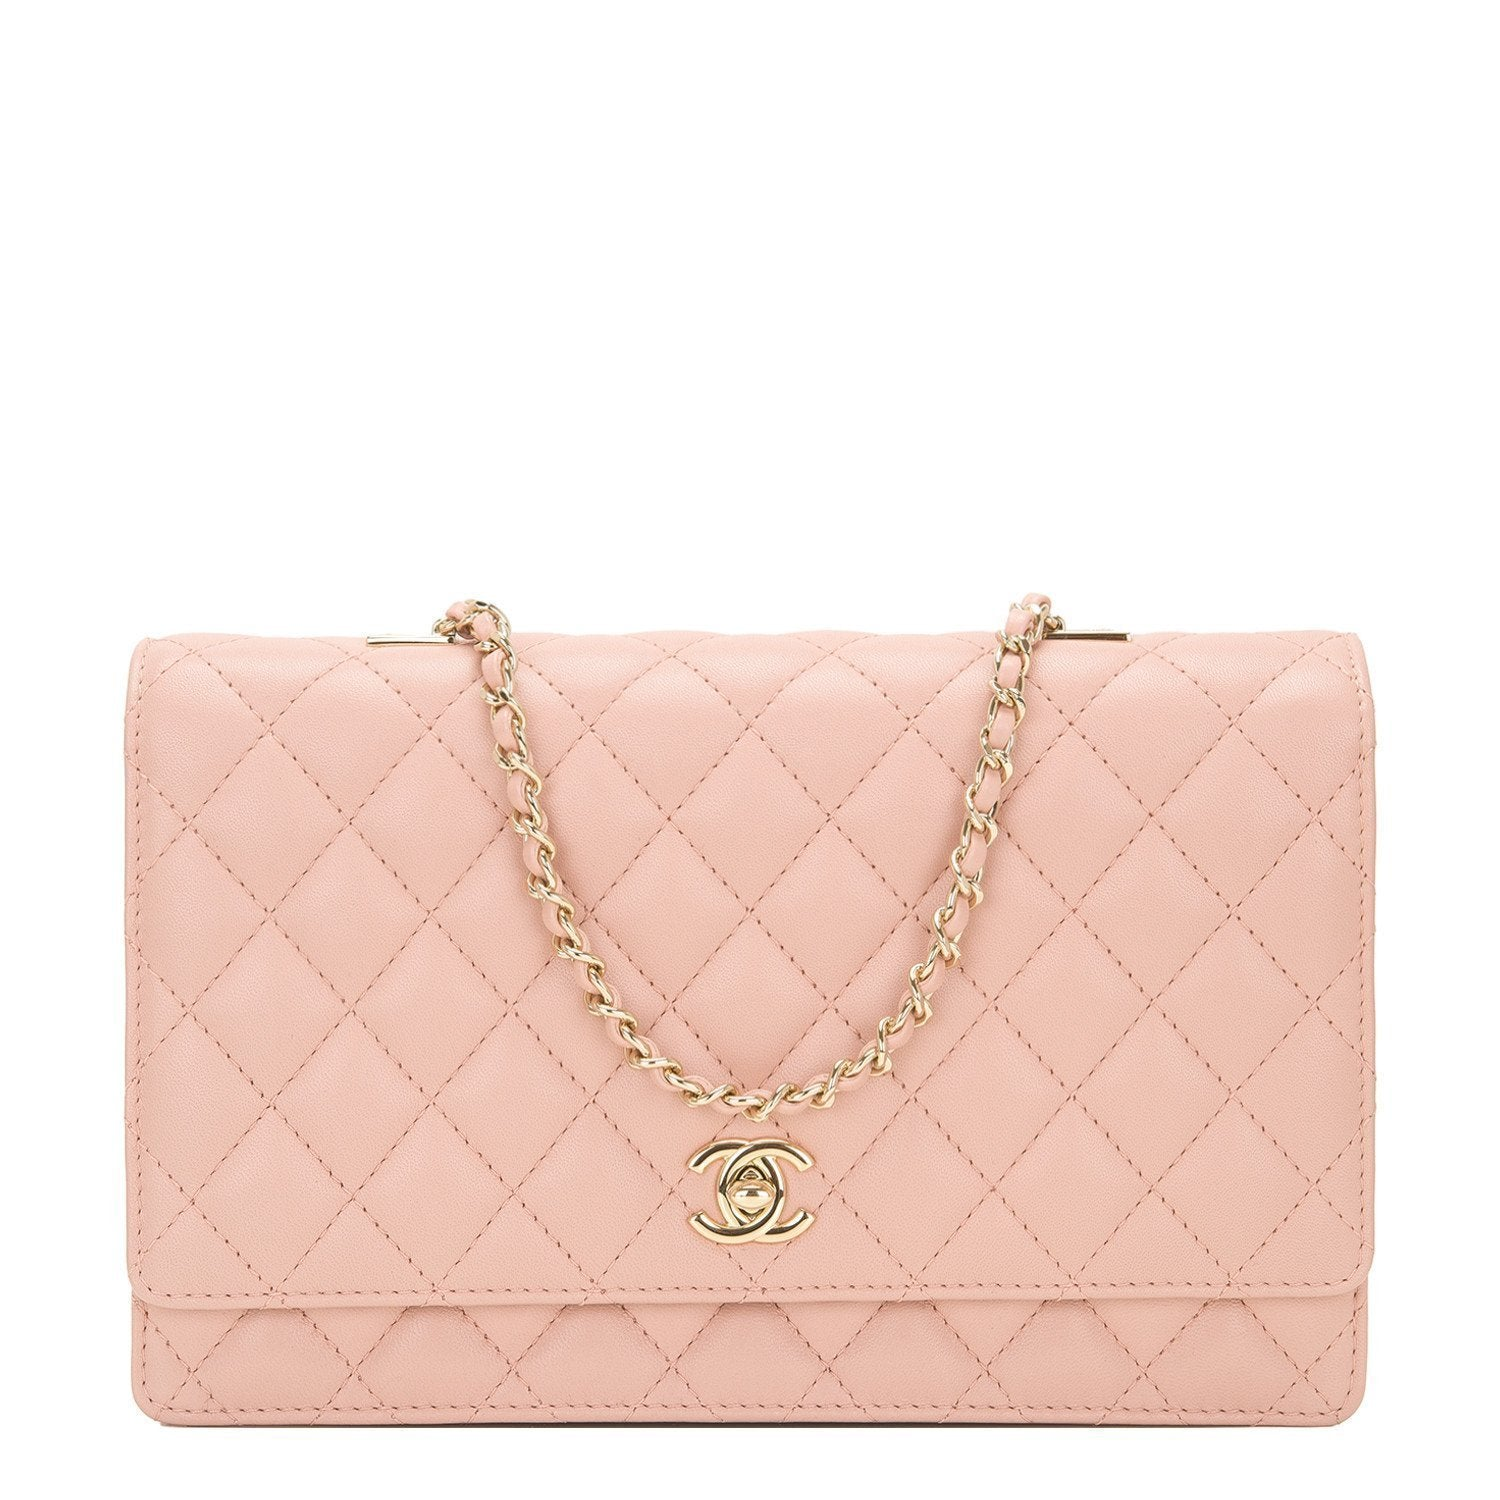 2460916266ff23 Chanel Nude Lambskin Fantasy Pearls Large Evening Flap Bag – Madison Avenue  Couture